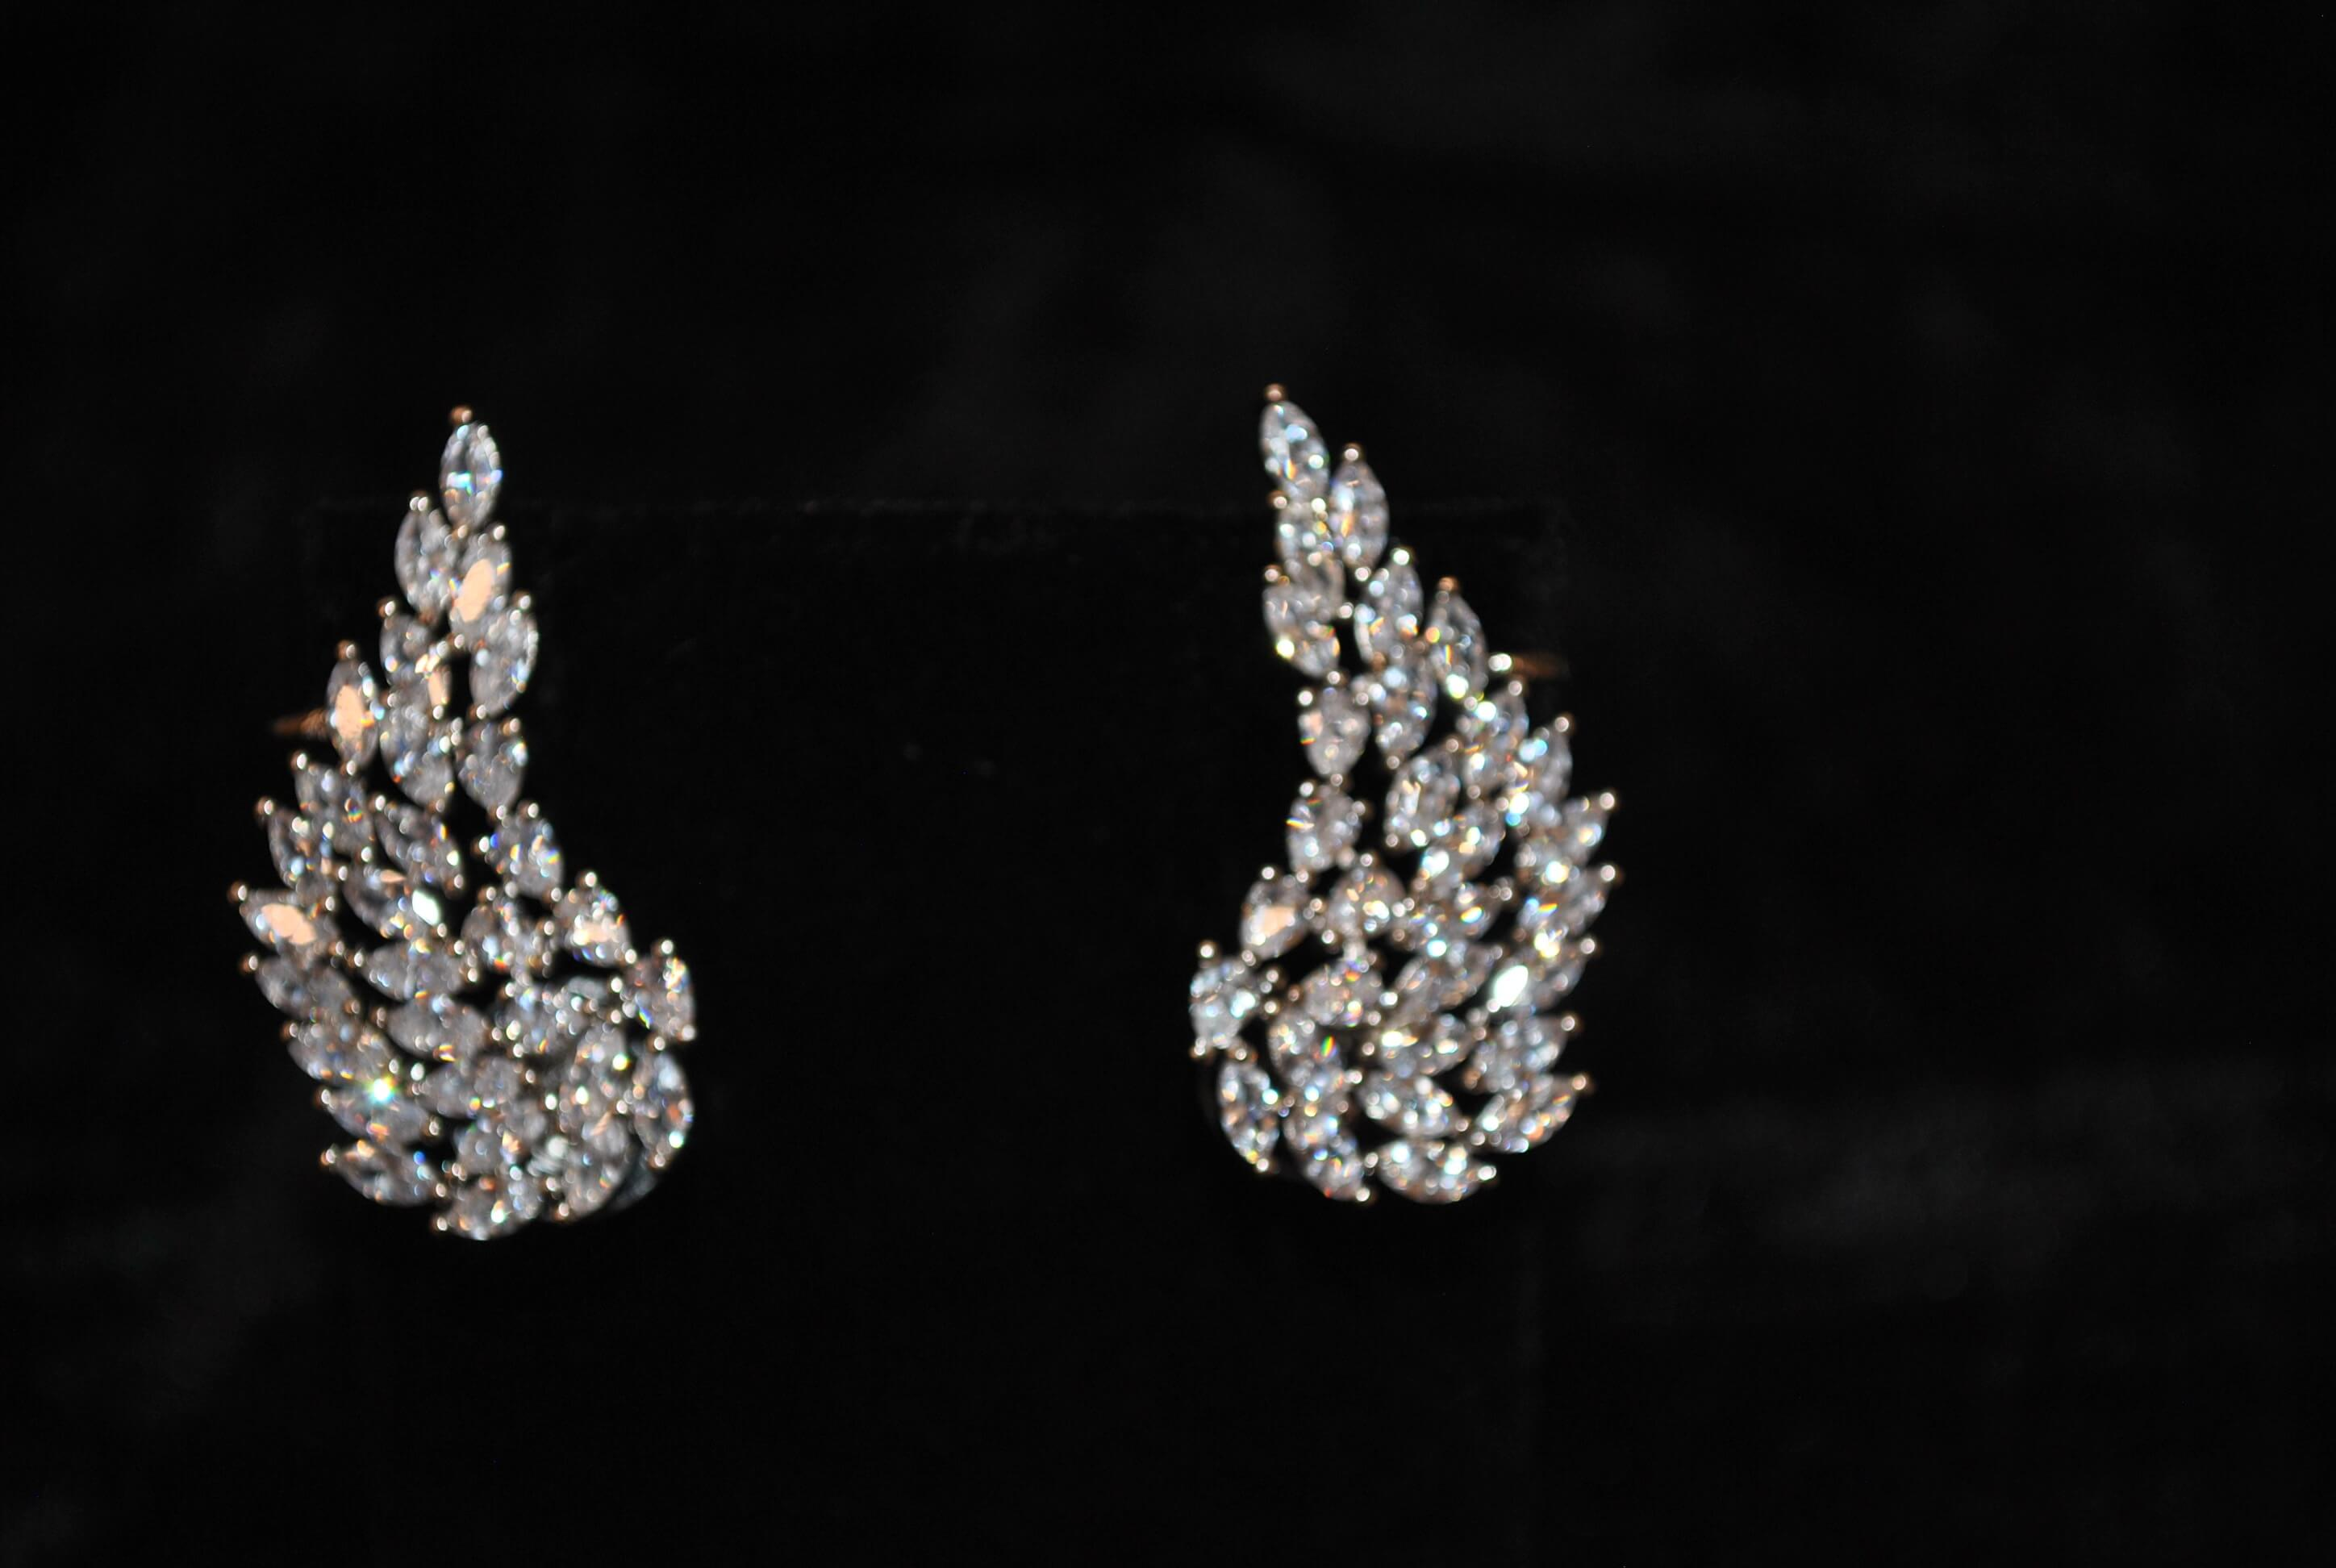 Zirconia Ear Cuff Earrings